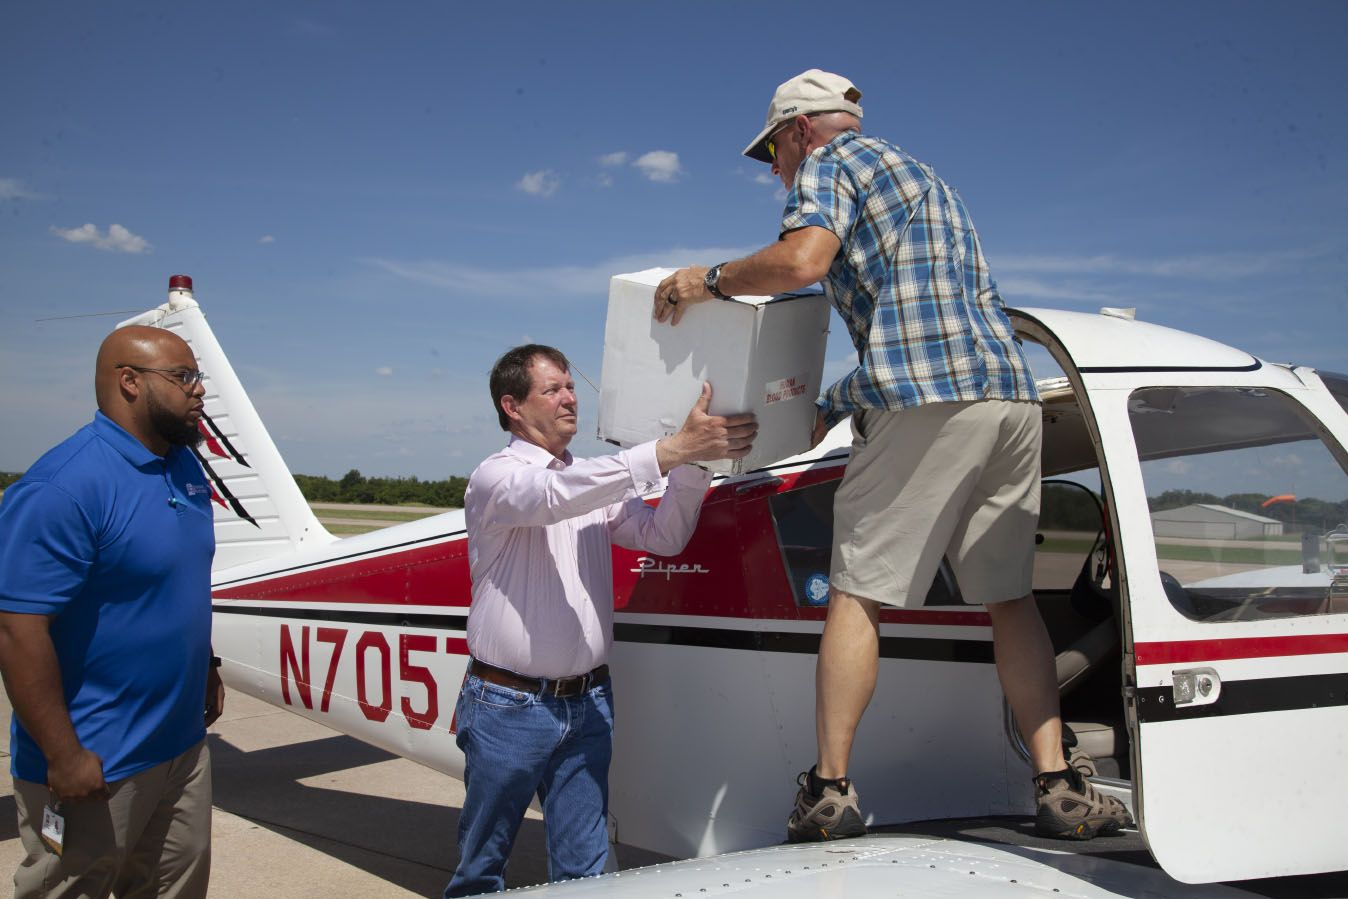 Carvin Brown and Jerry Hunter help load Clark Southard's airplane as he prepares for a Flights For Life mission.